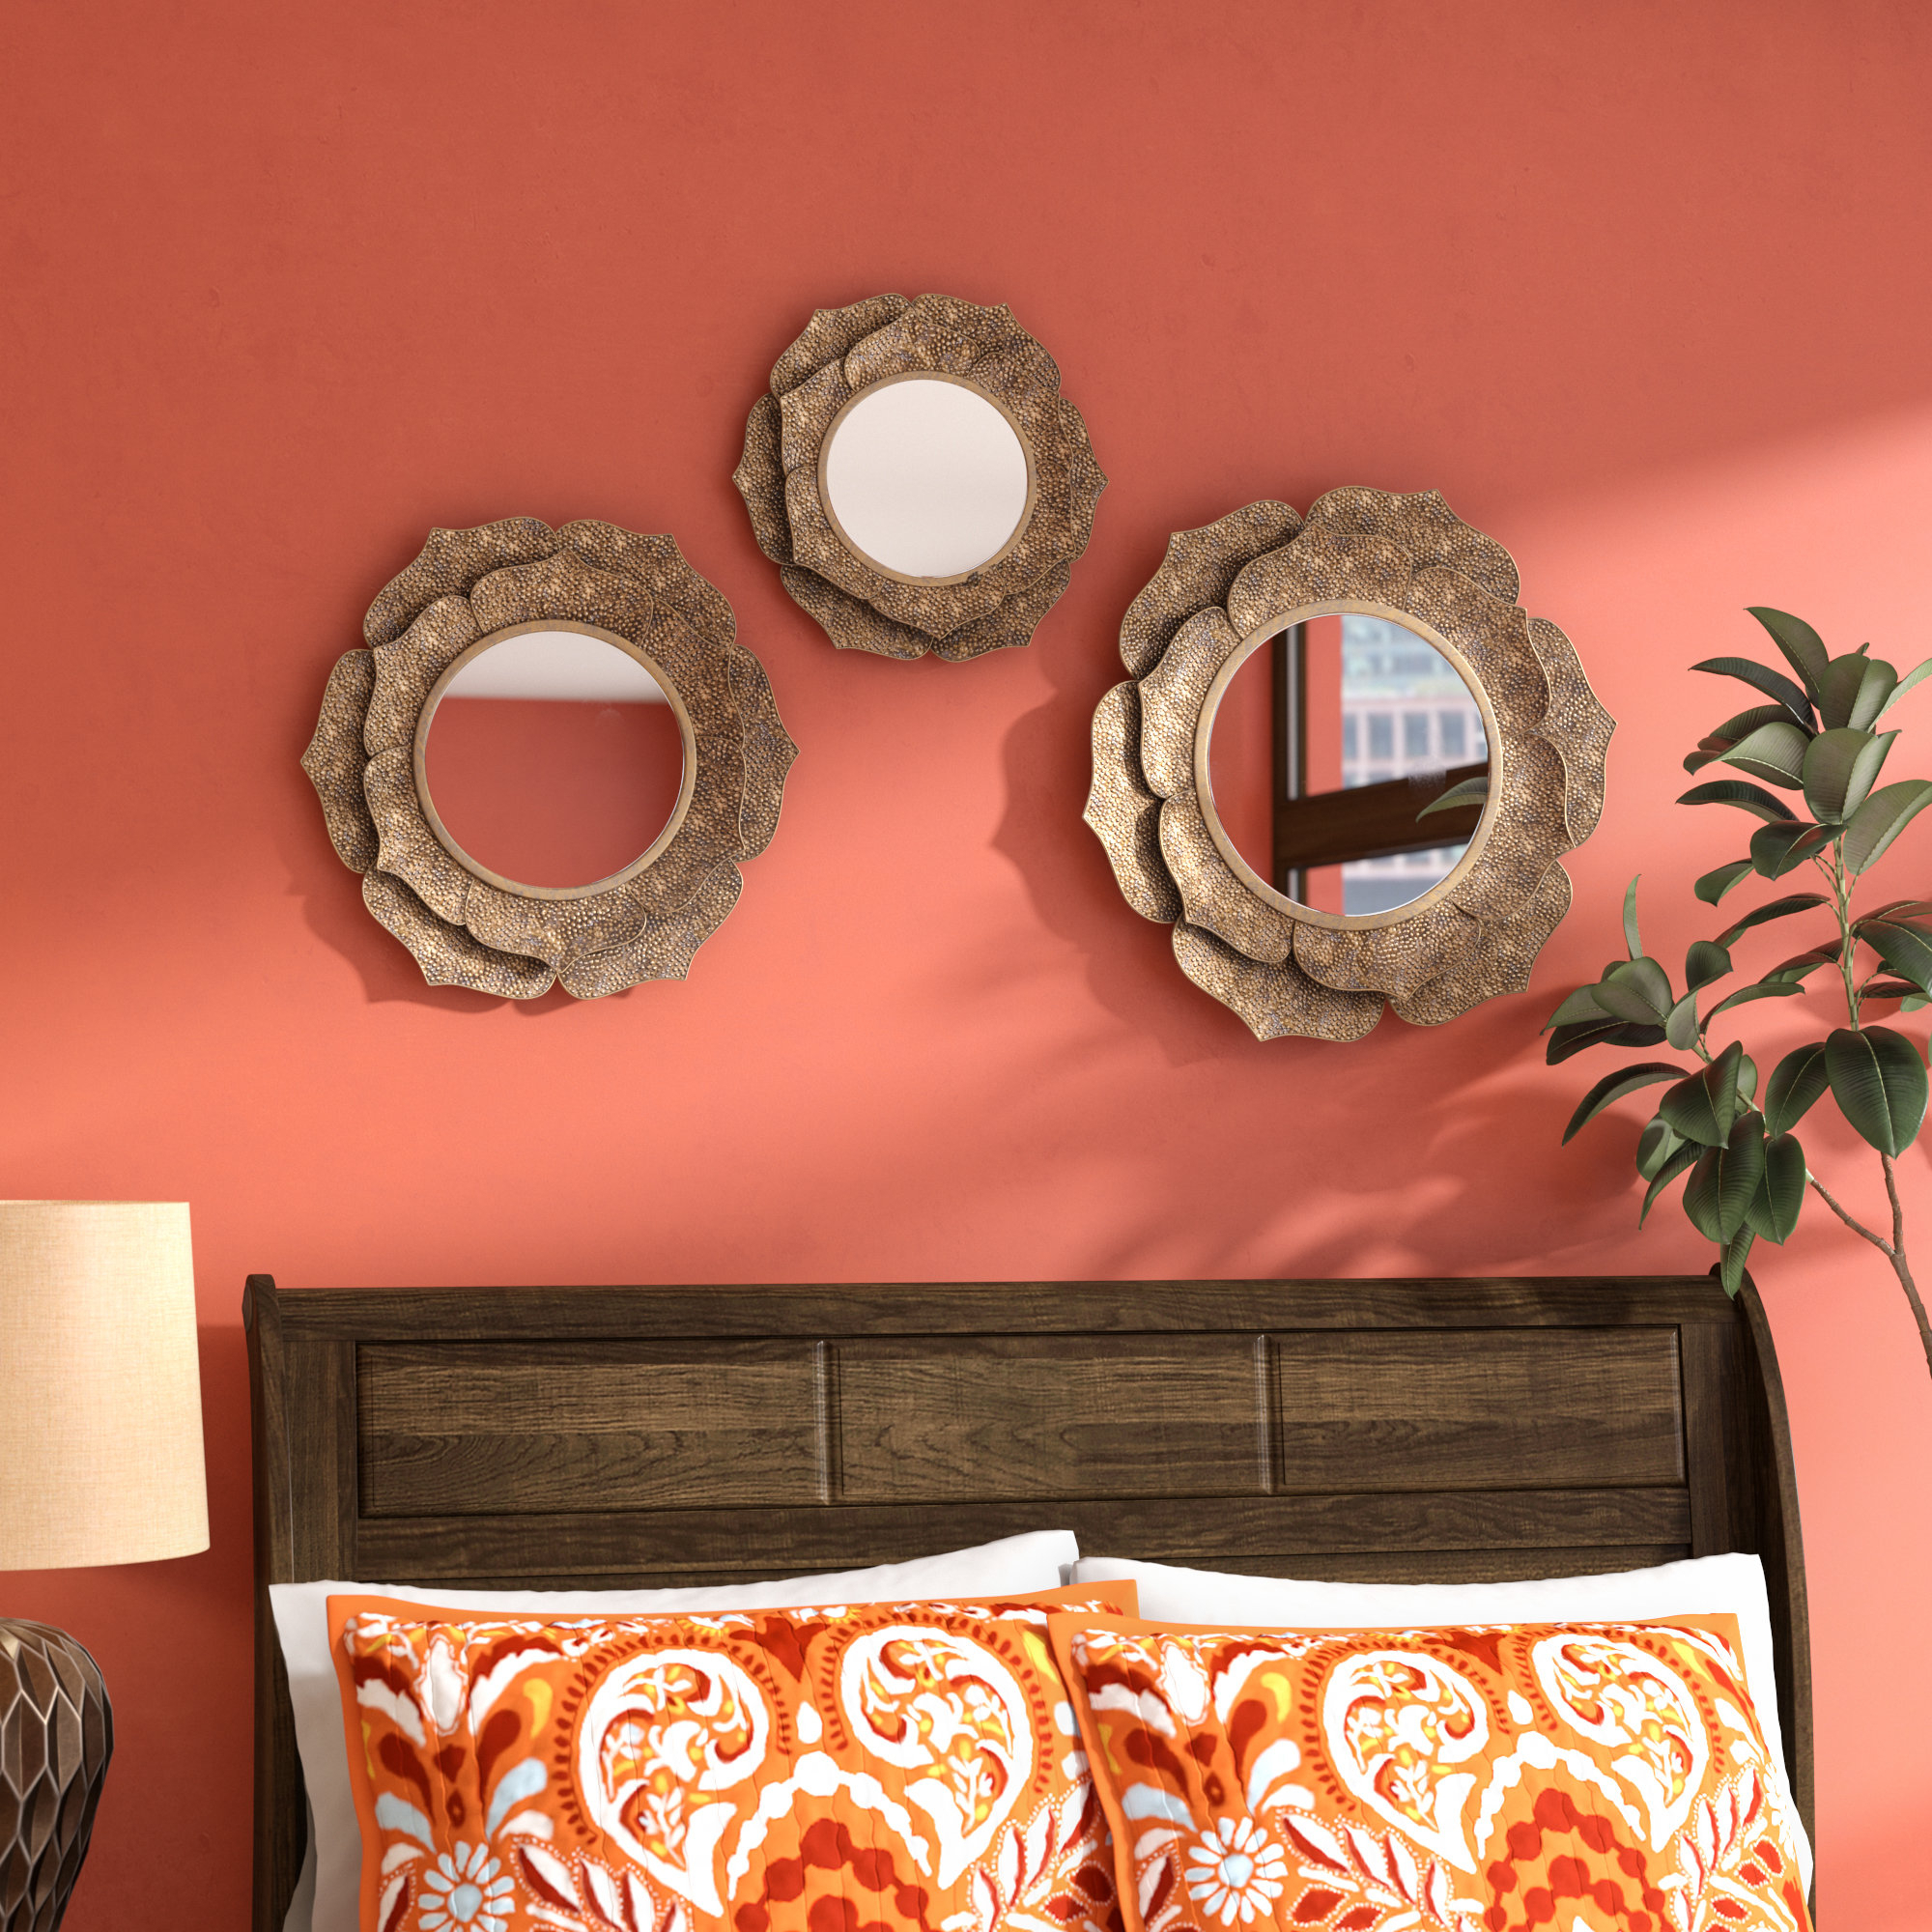 Skiba Metal 3 Piece Wandering Wall Mirror Set Regarding Preferred Orange Wall Mirrors (View 20 of 20)